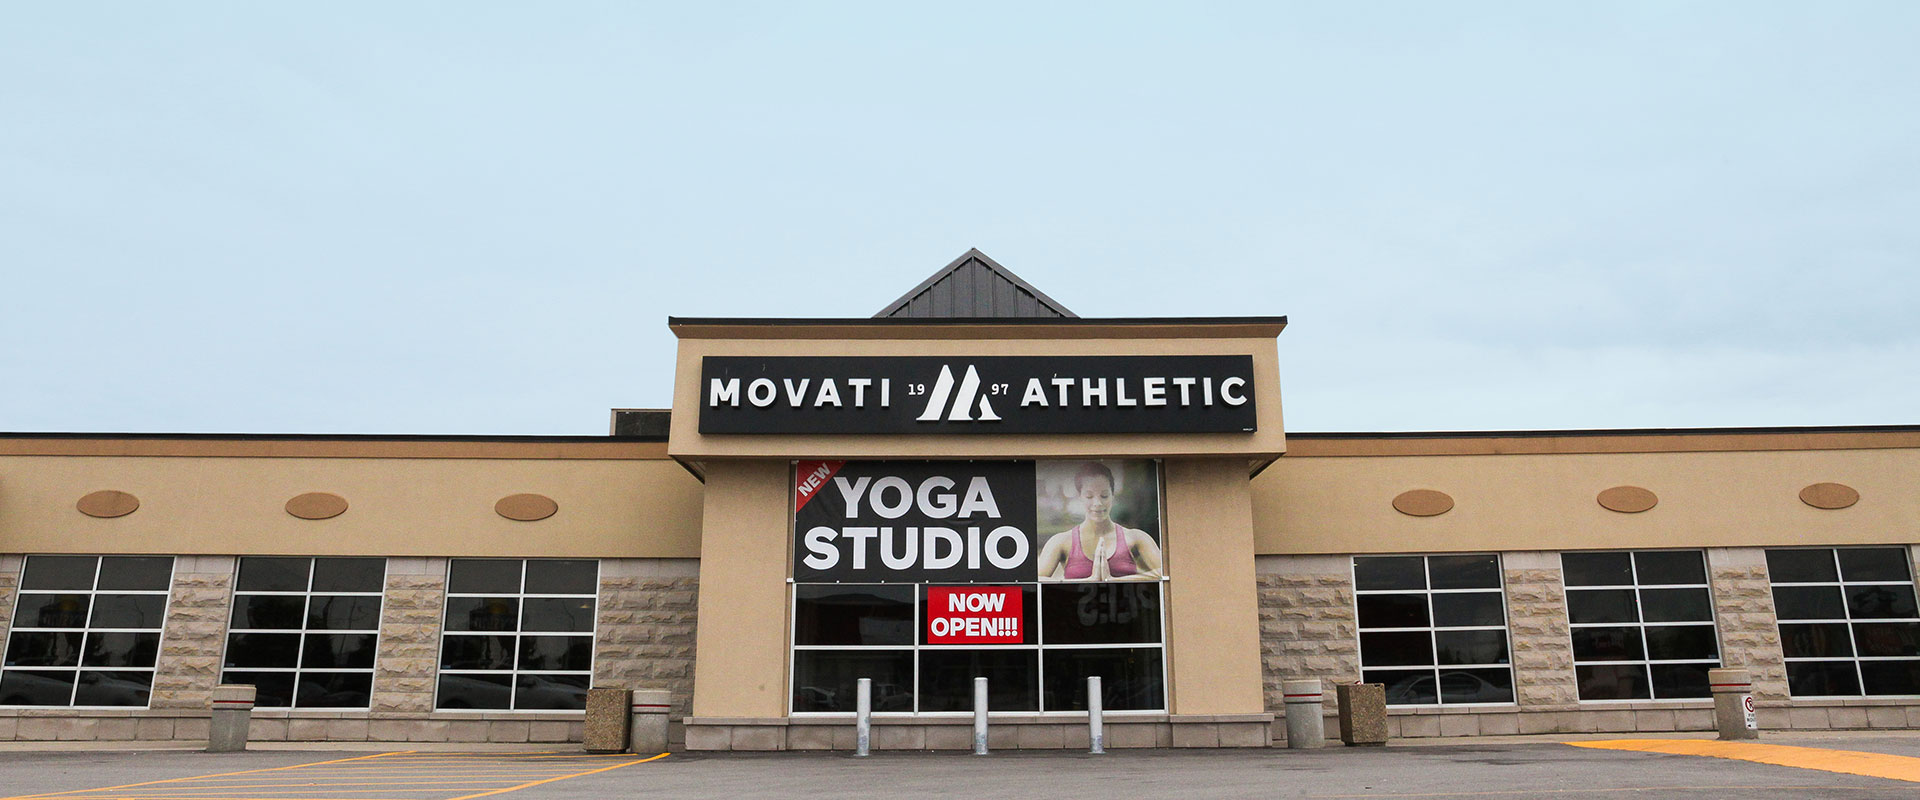 Movati Athletic Brantford - Exterior